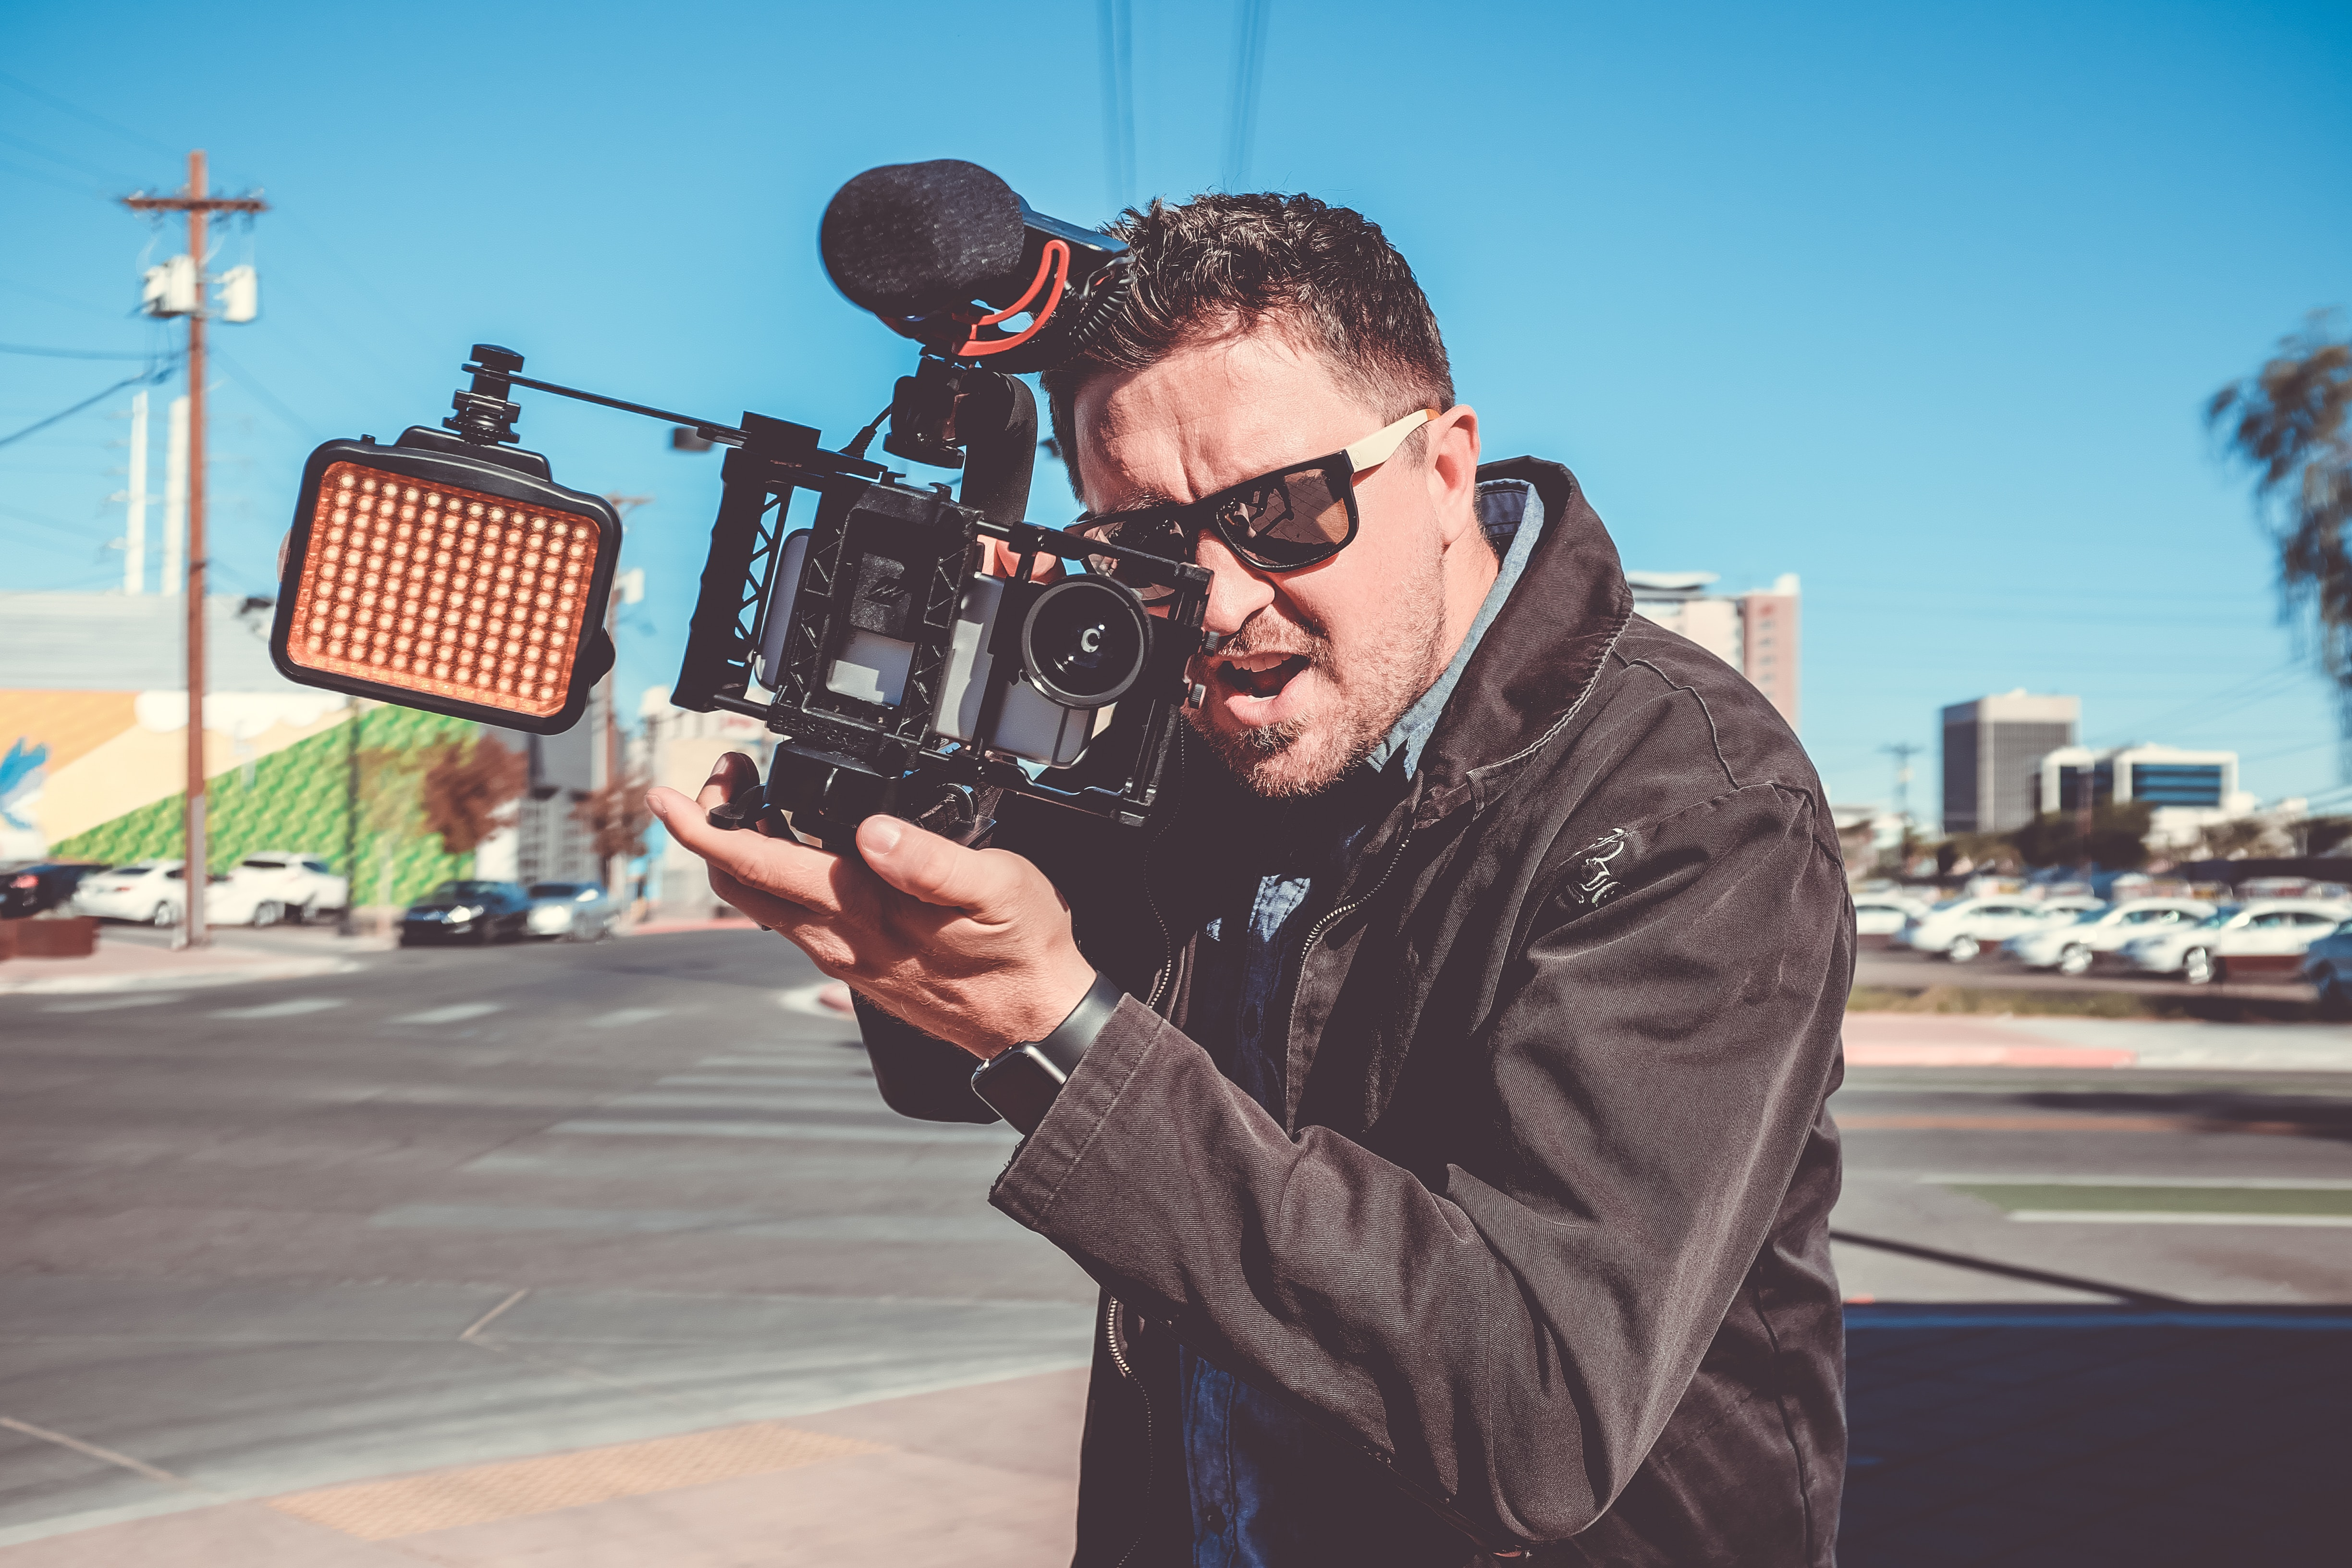 Man filming, Image Credit: NeONBRAND on Unsplash